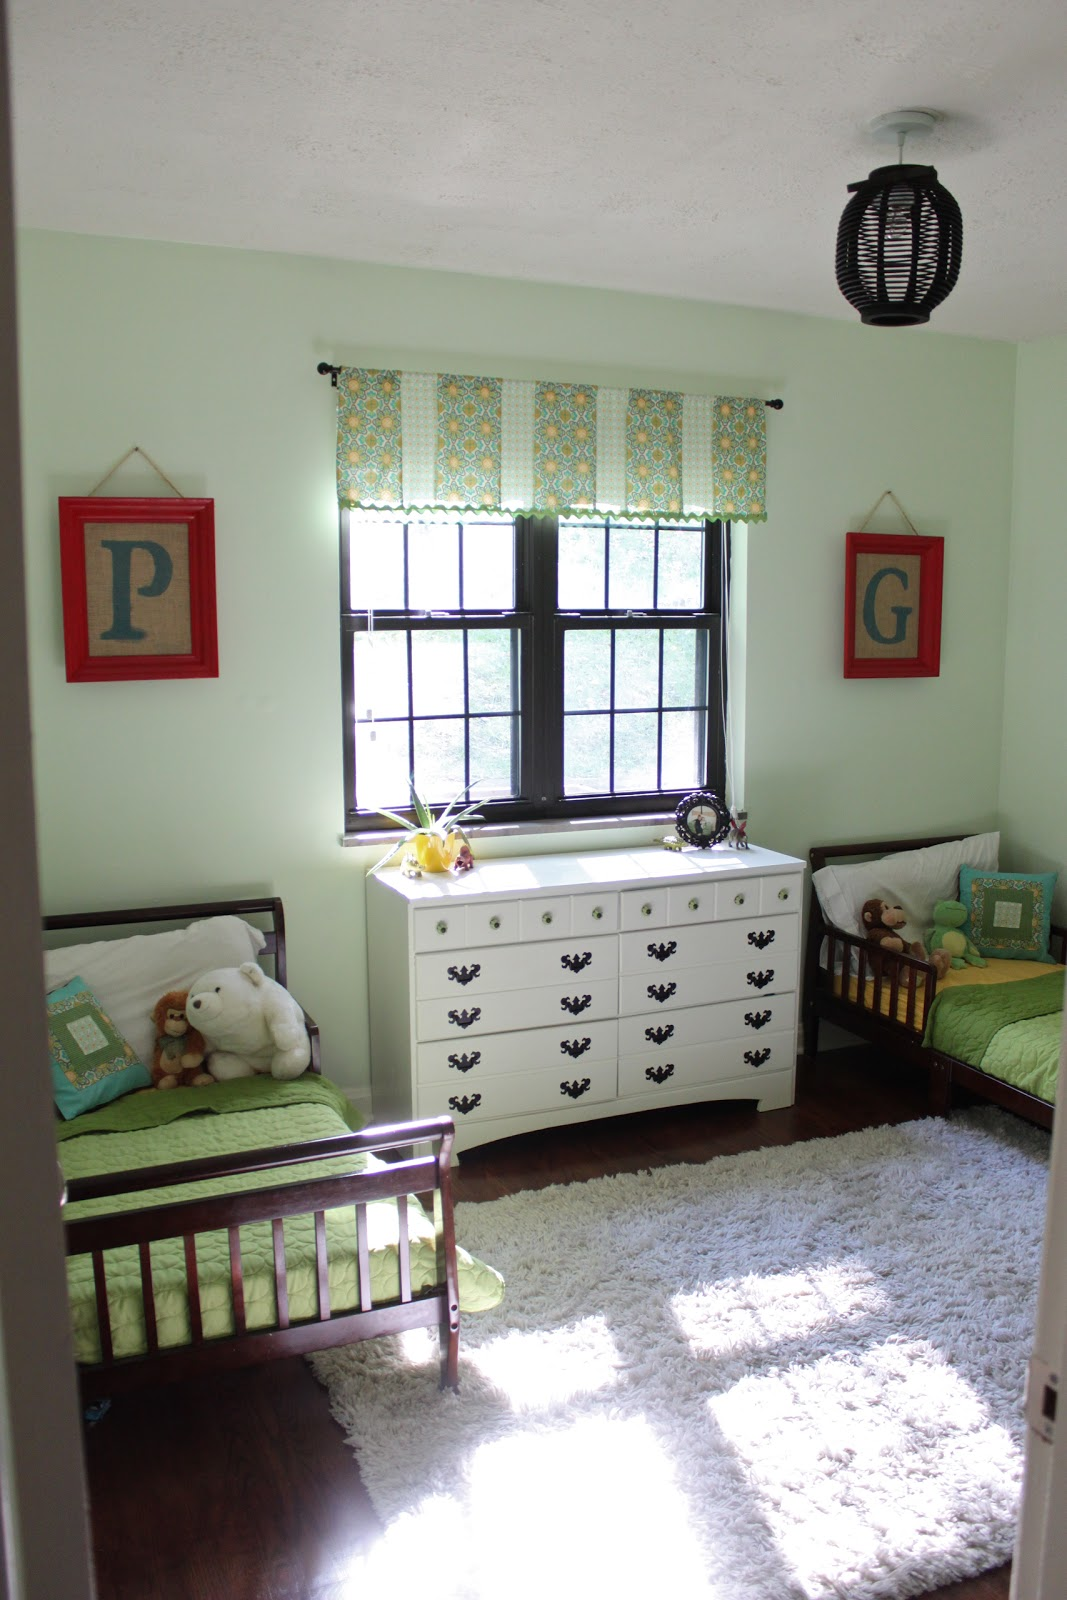 Amelia S Room Toddler Bedroom: Three Boys And A Girl: Boys' Room